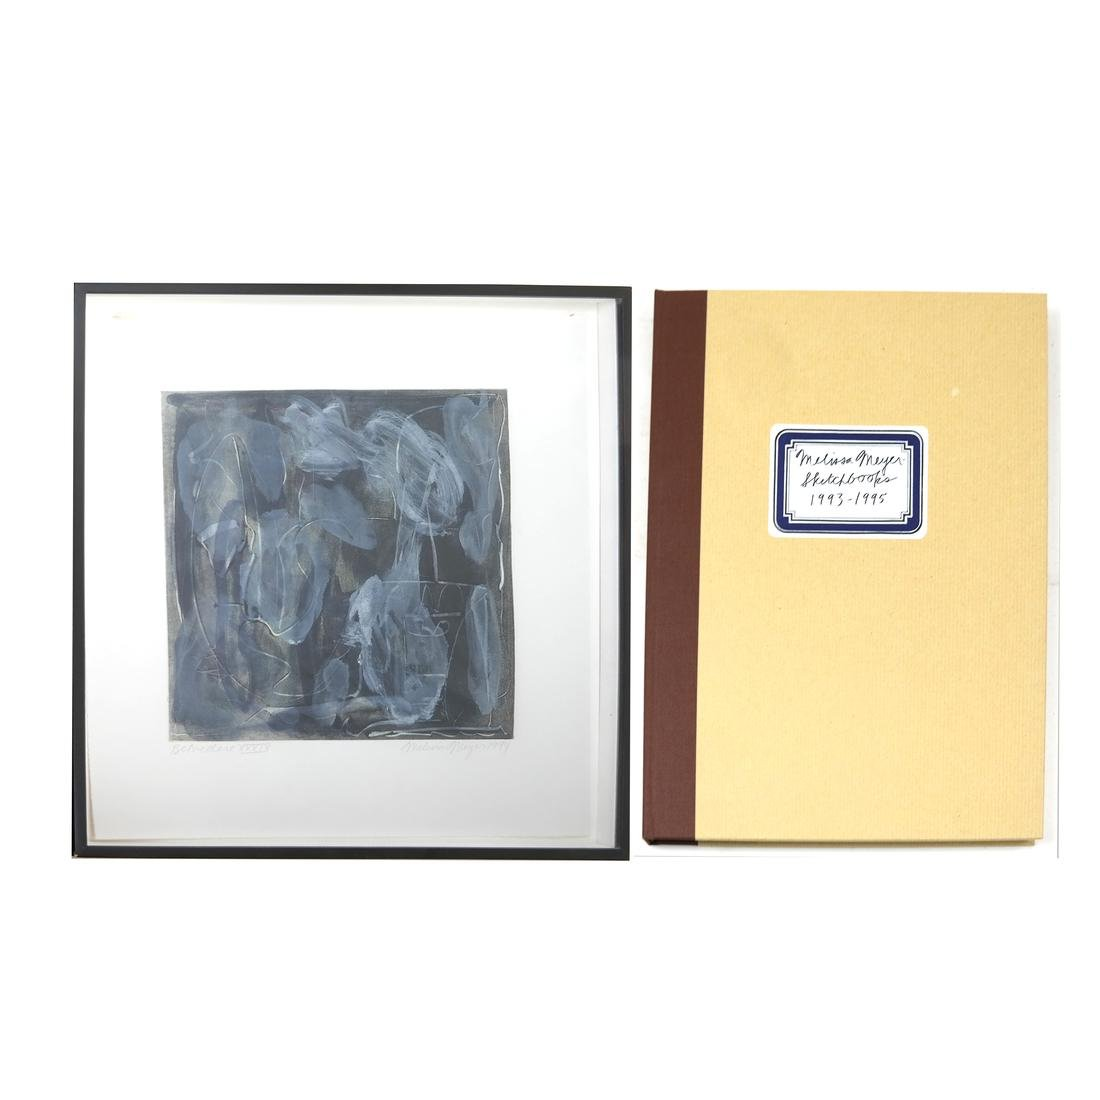 Melissa Meyer, 1994 Monotype and 1997 Book